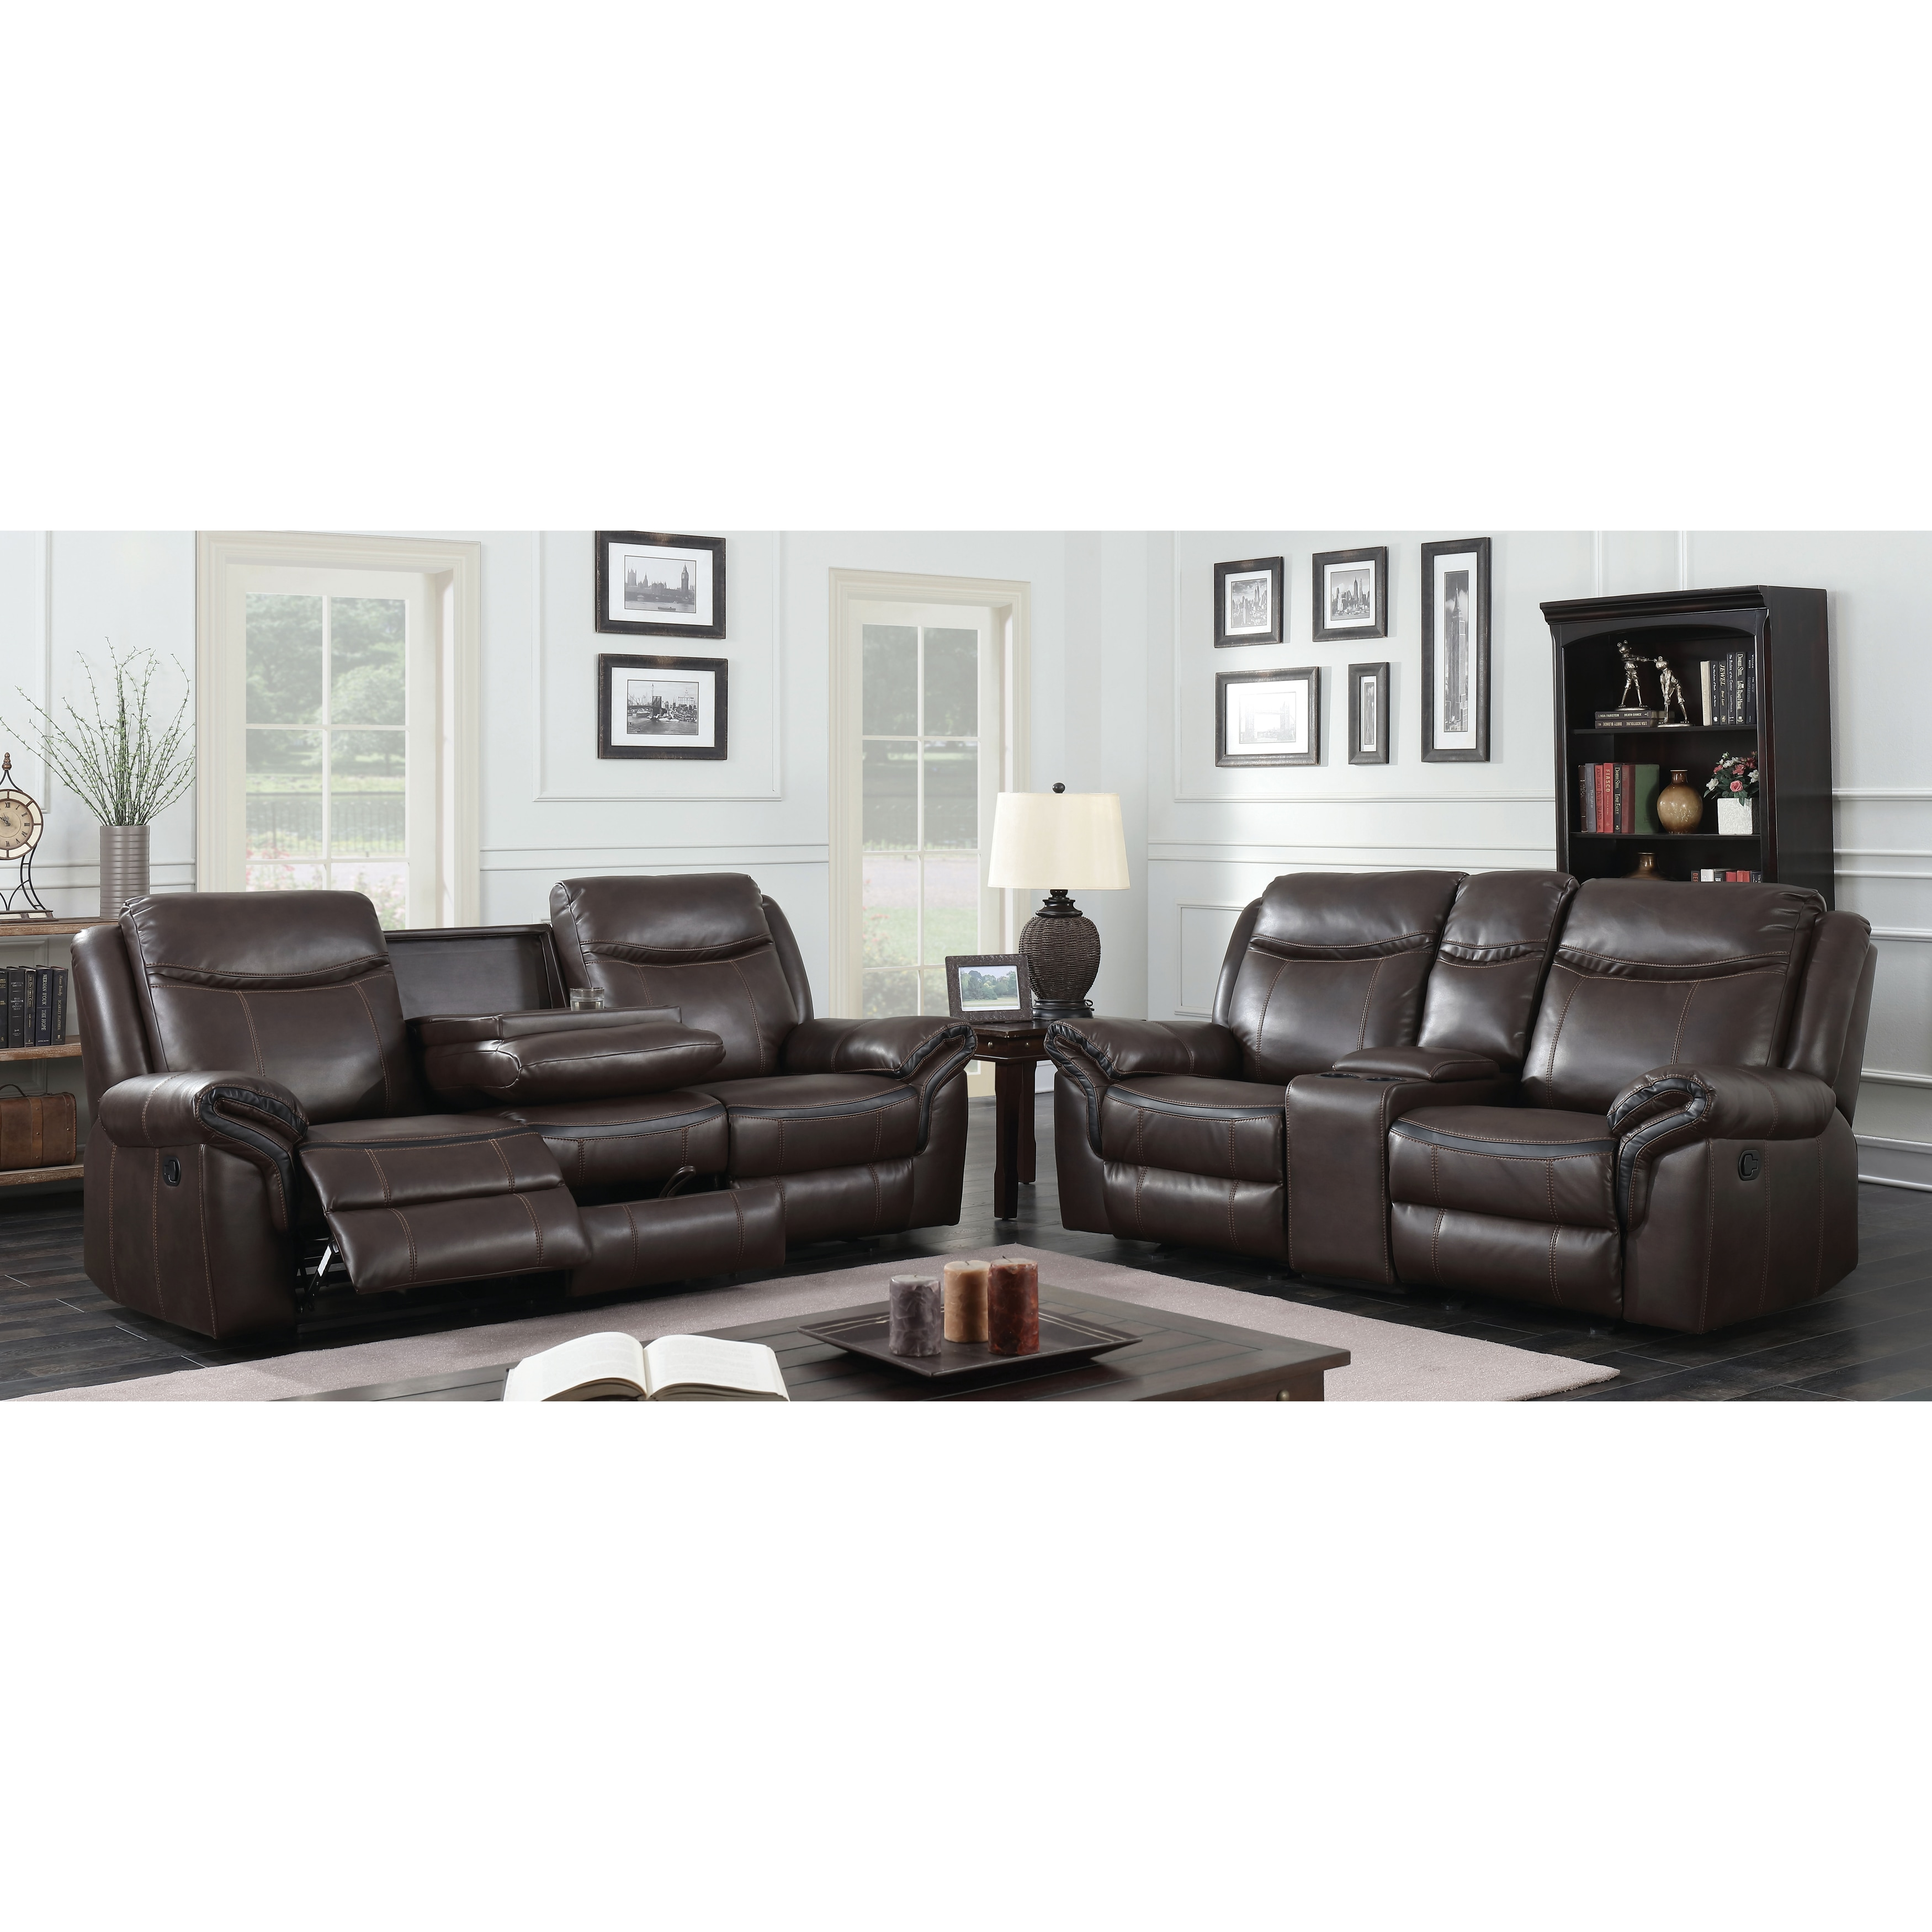 Furniture of America Jefferson Transitional 2-piece Brown Leather ...